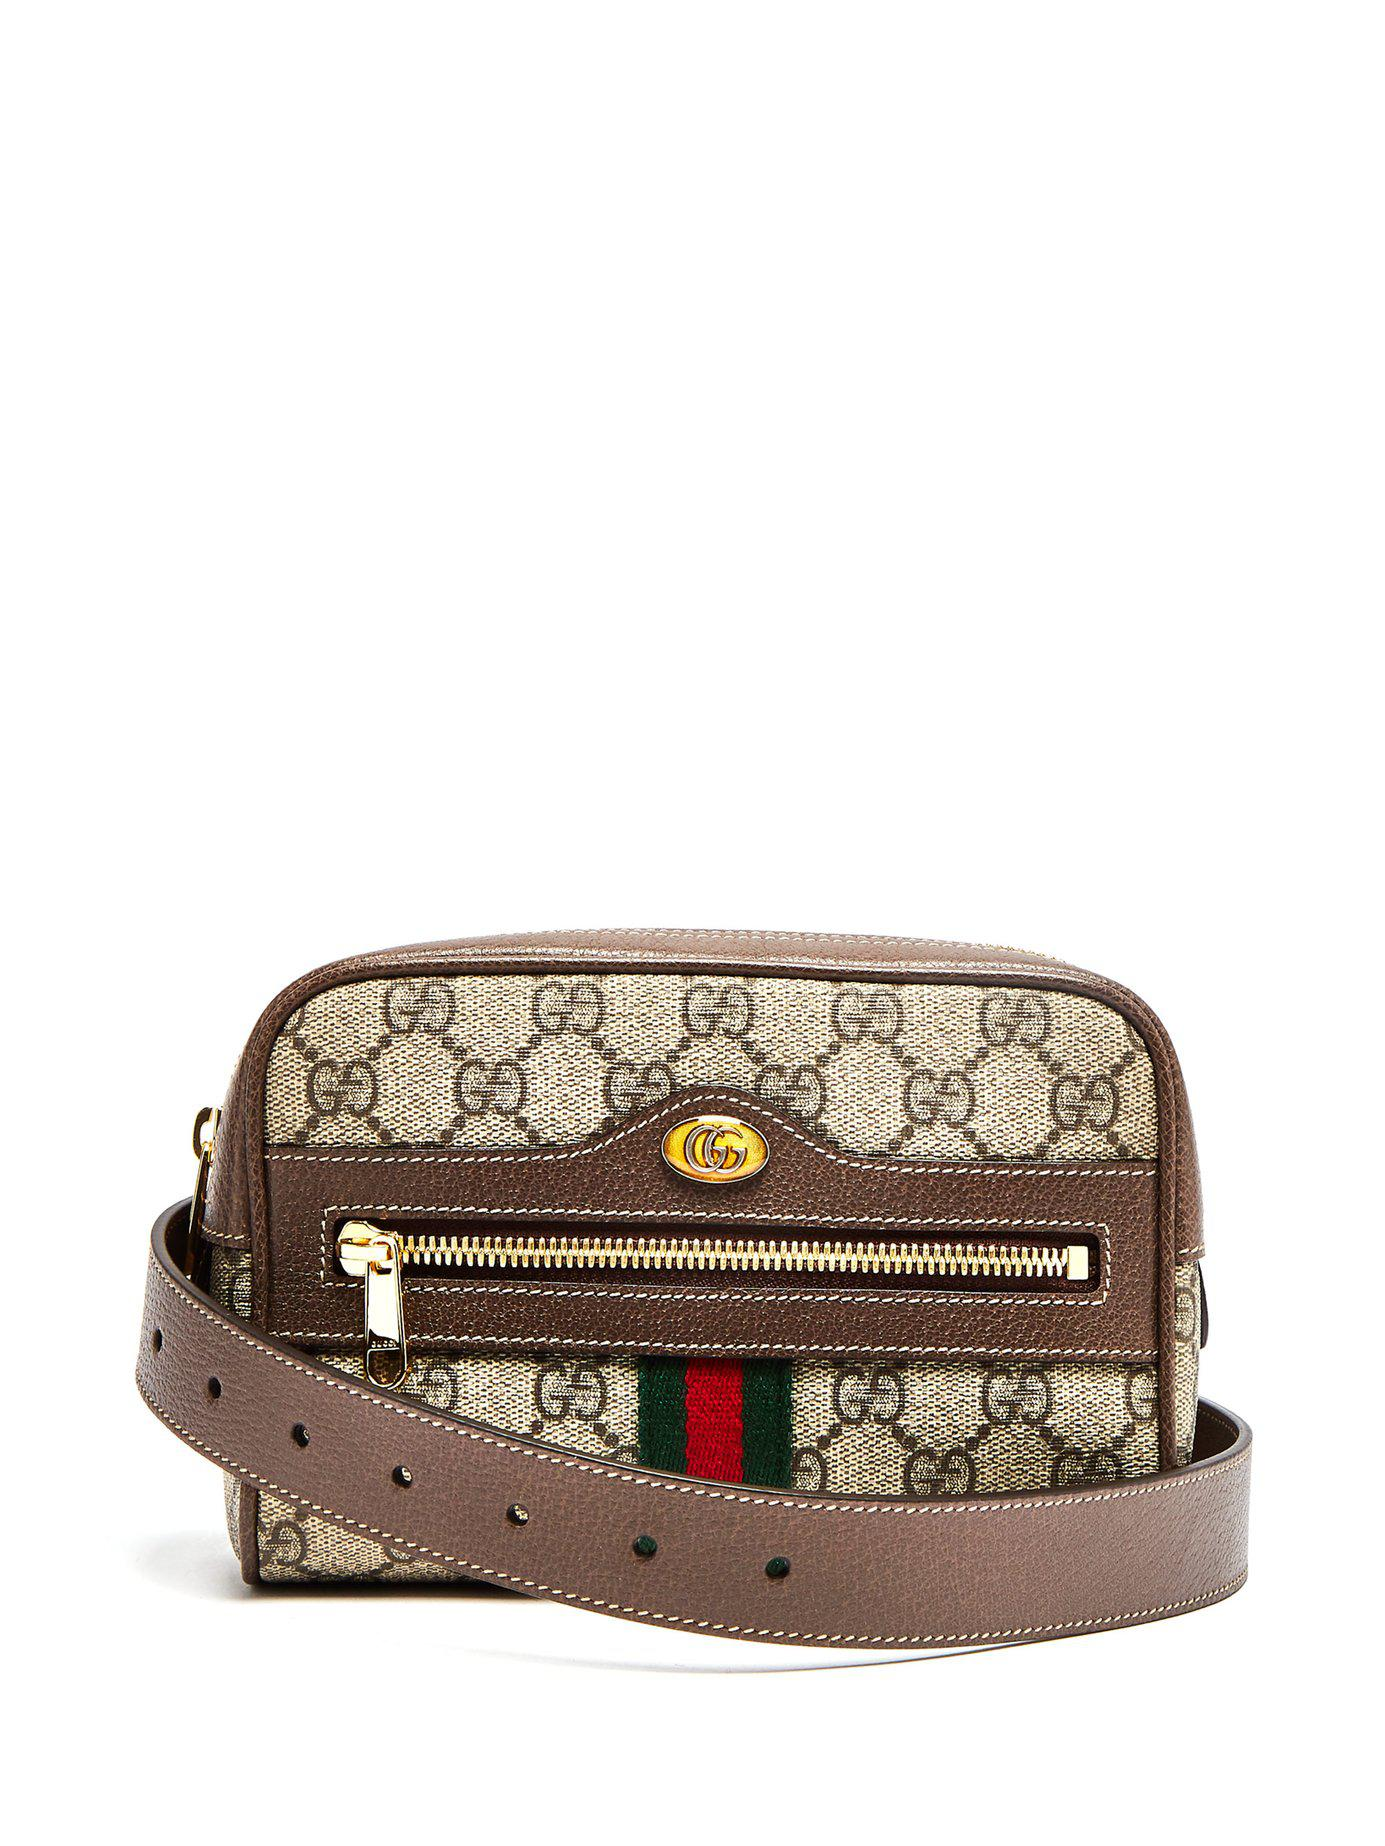 49f3b2a9578 Lyst - Gucci Ophidia Gg Supreme Belt Bag in Brown - Save 4%